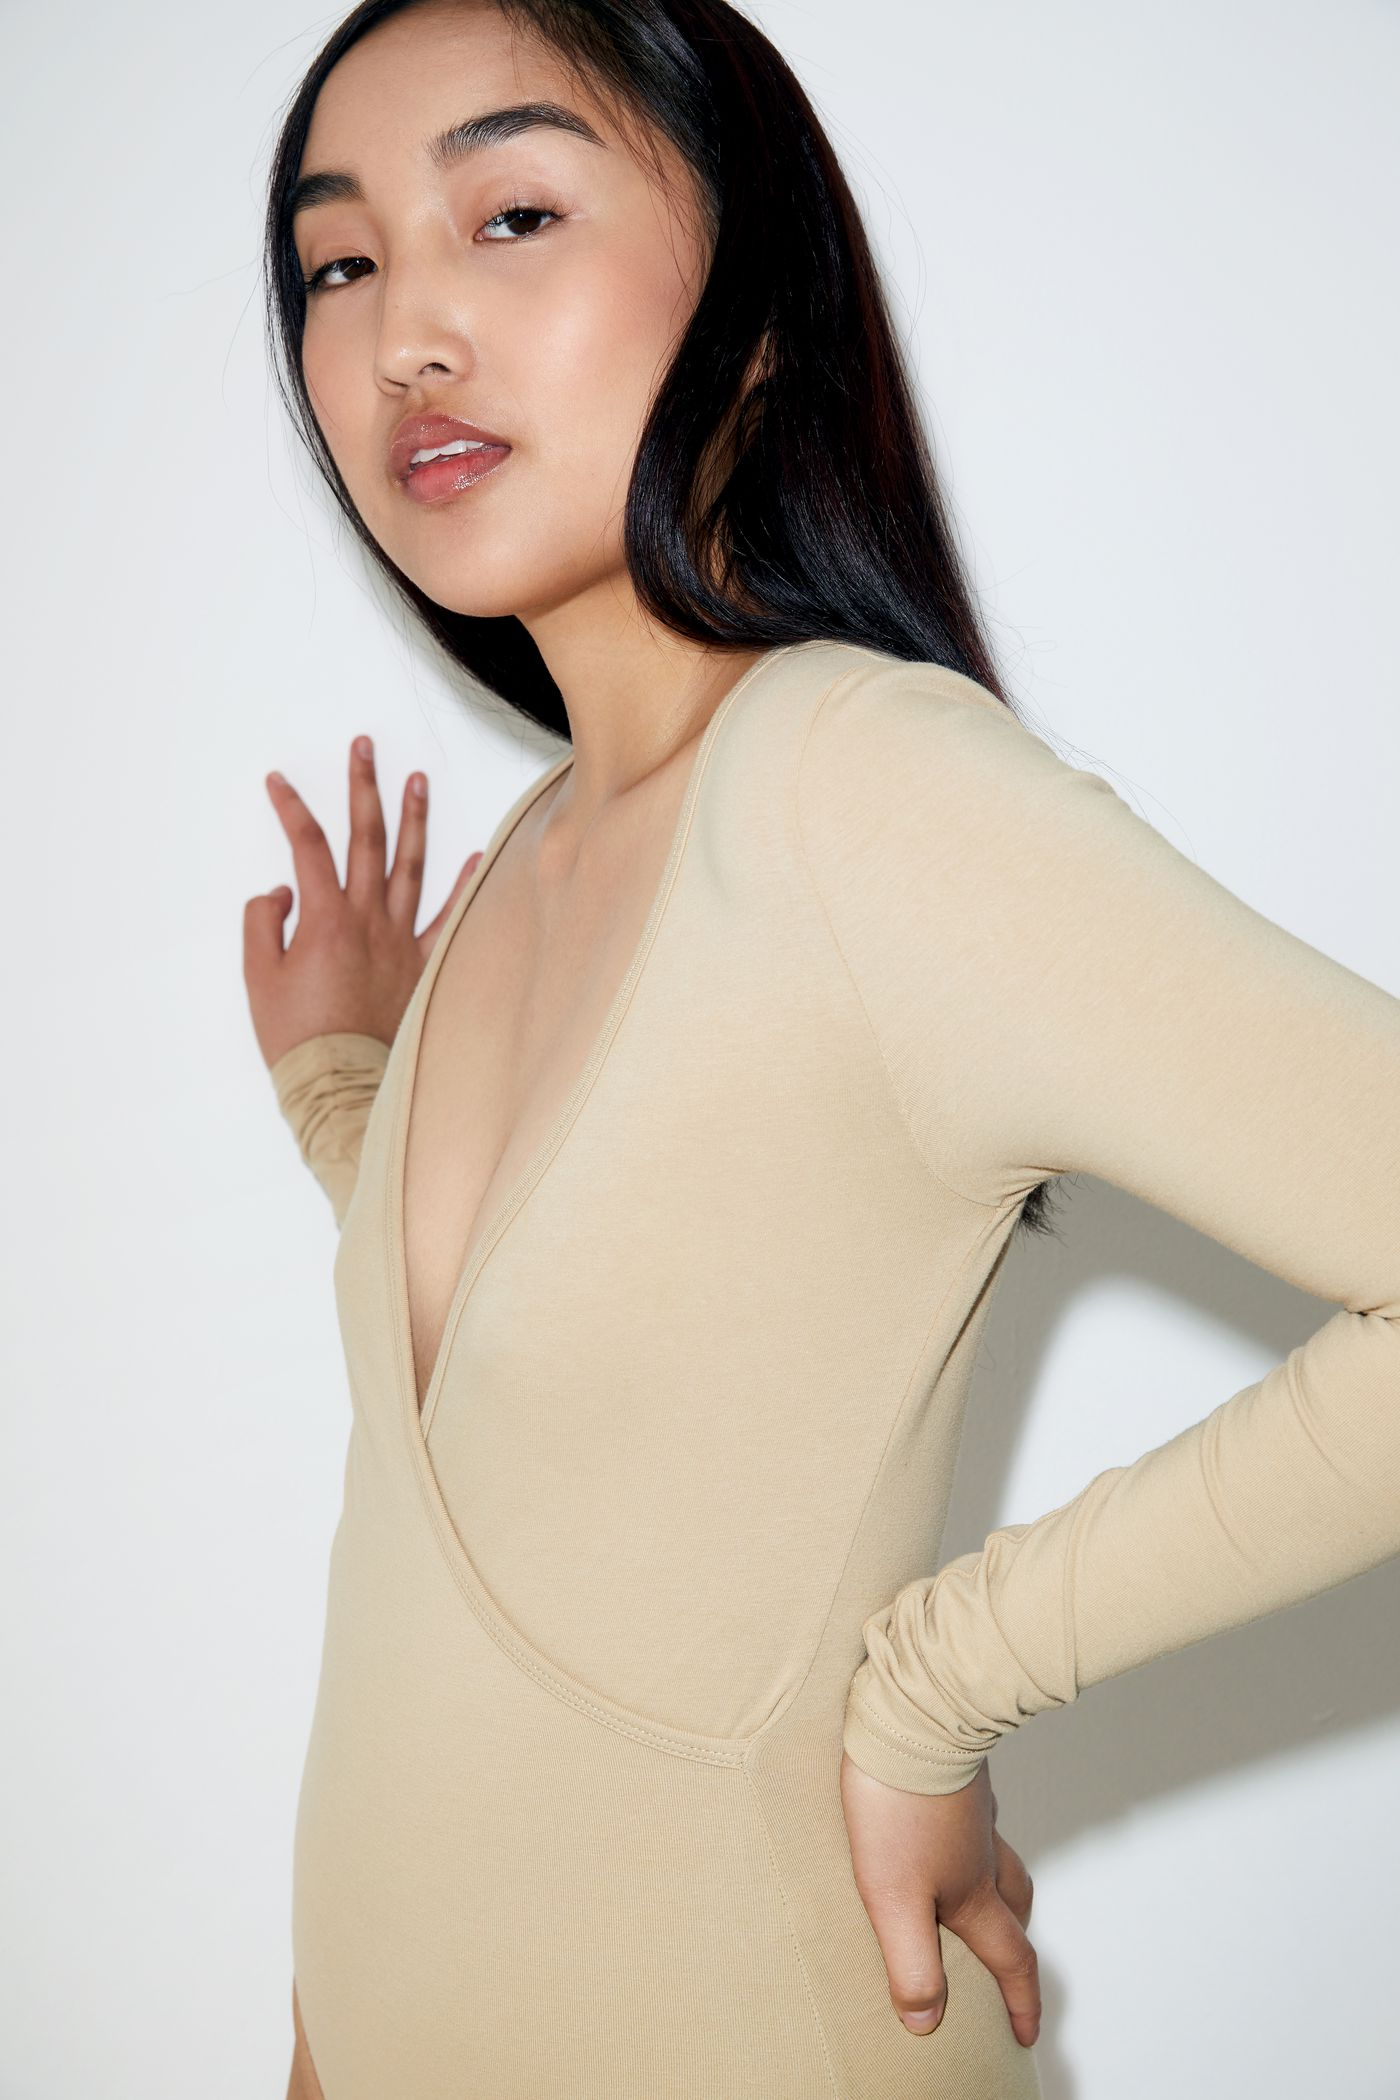 American Apparent Or Porn american apparel's rebrand says a lot about life after